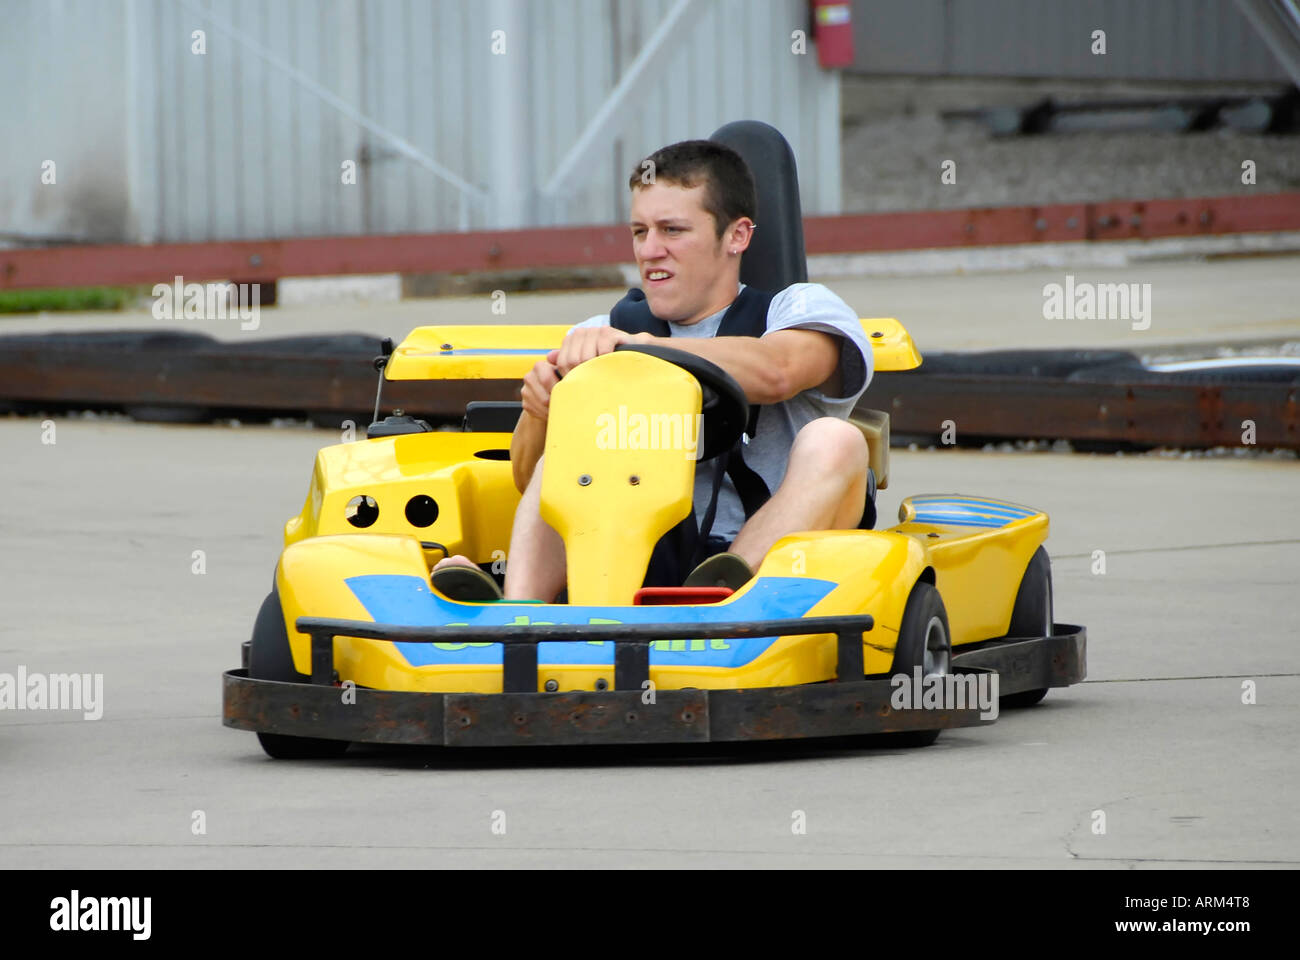 Driving Mini Race Cars For Fun At Cedar Point Amusement Park At